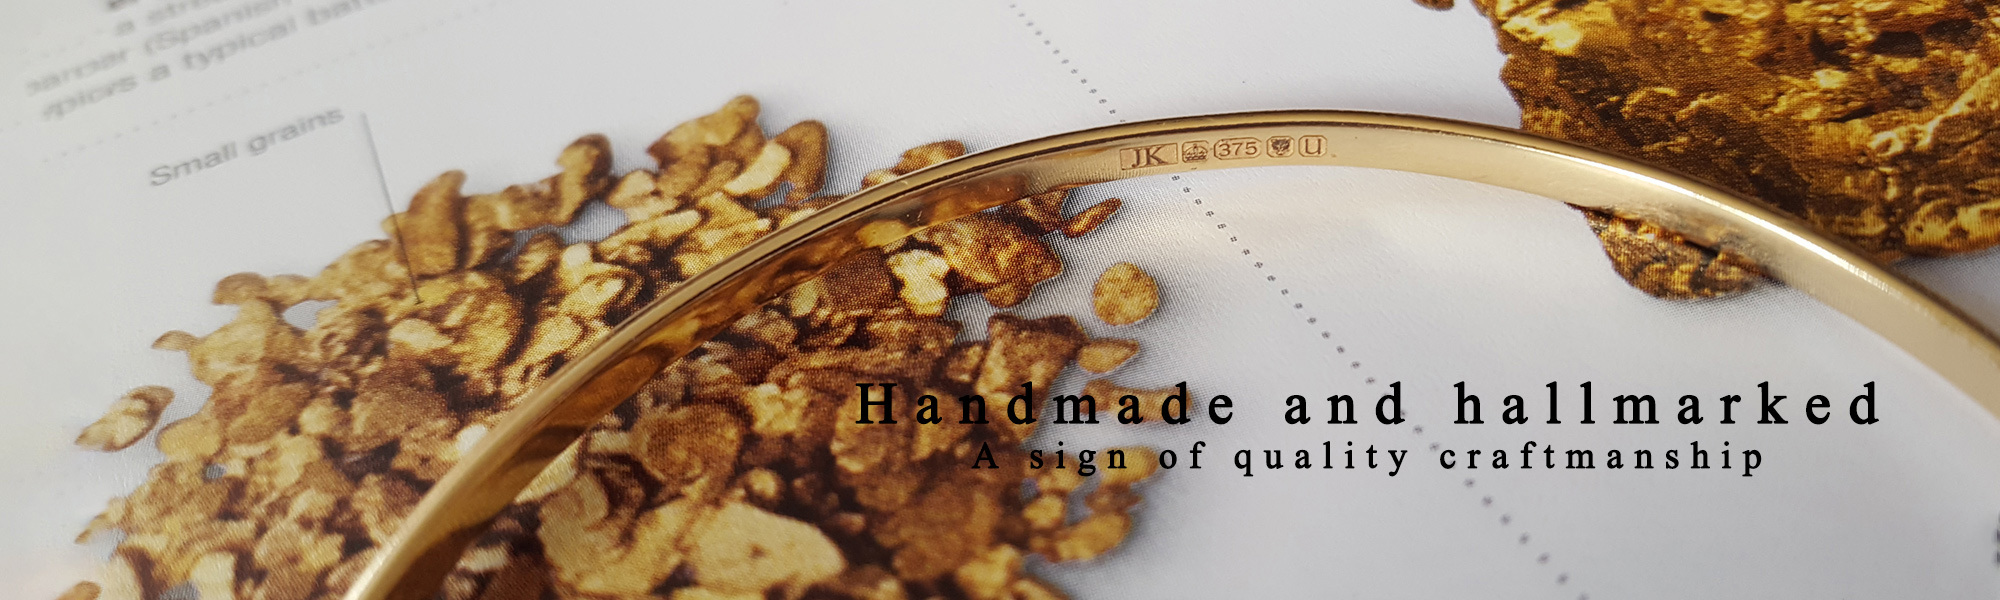 Quality handcrafted jewellery